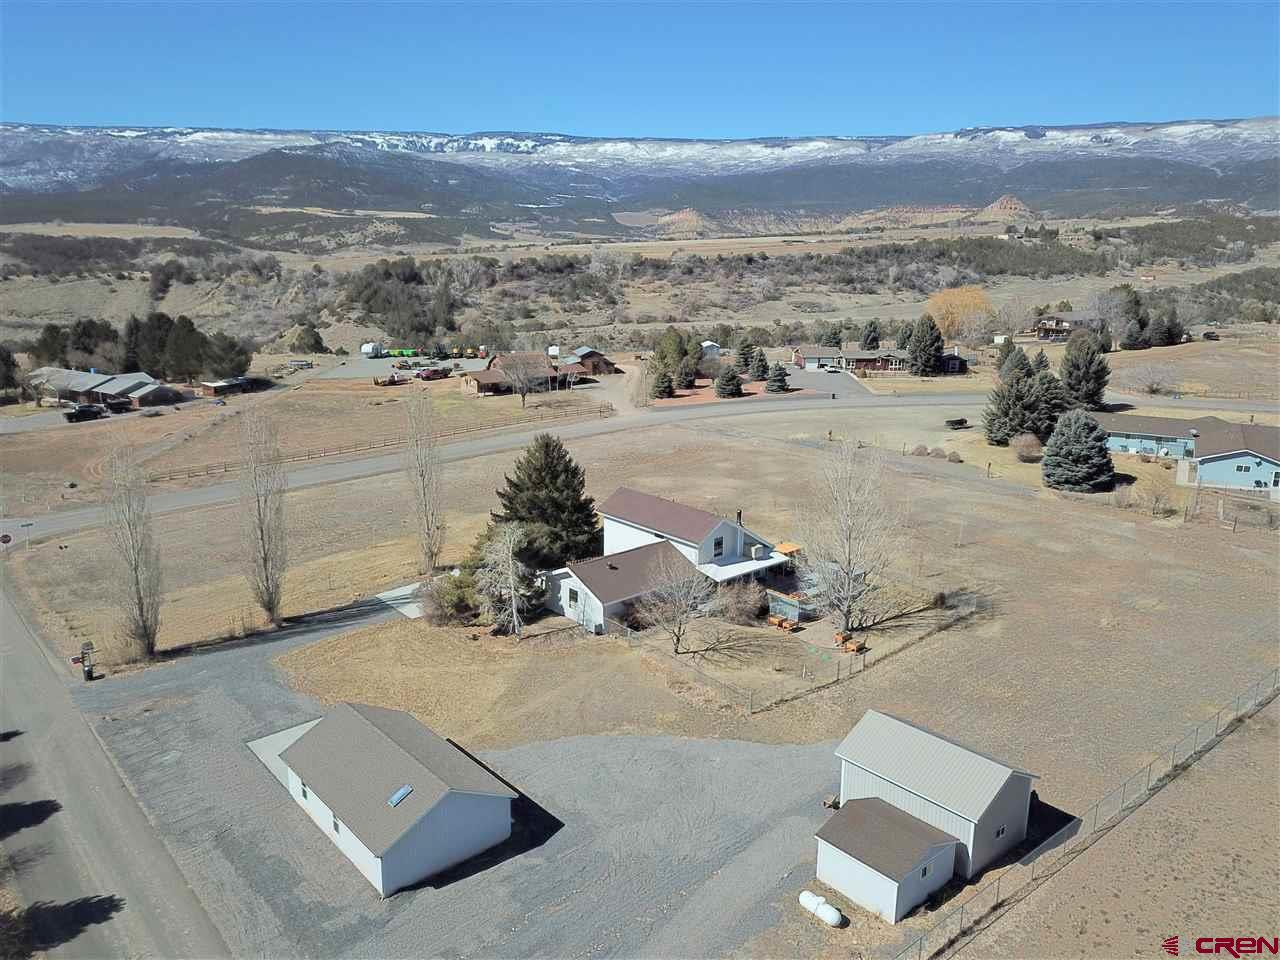 Beautiful home situated on 2.2 acres with outstanding Grand Mesa views! This home offers many wonderful features including  tongue-n-groove ceiling, newer Renewal windows by Anderson, gas fireplace and a floor plan that offers great flex spaces. Lovely kitchen with Quartz countertops, pantry, newer appliances and open to the dining room and an office. Master bedroom on the main level with two more bedrooms and full bathroom upstairs. A finished basement with large family room, pellet stove, full bathroom, two bedrooms and utility/laundry room. Enjoy your Colorado days on the back deck with room to entertain or a night under the stars in the hot tub.  Awesome workshop and garage spaces! A two car attached garage, two car detached garage plus a camper/large vehicle garage. Mature trees and landscaping under a sprinkler system with irrigation water through the HOA. A country location yet close to town! Elevate fiber internet is installed at the home.